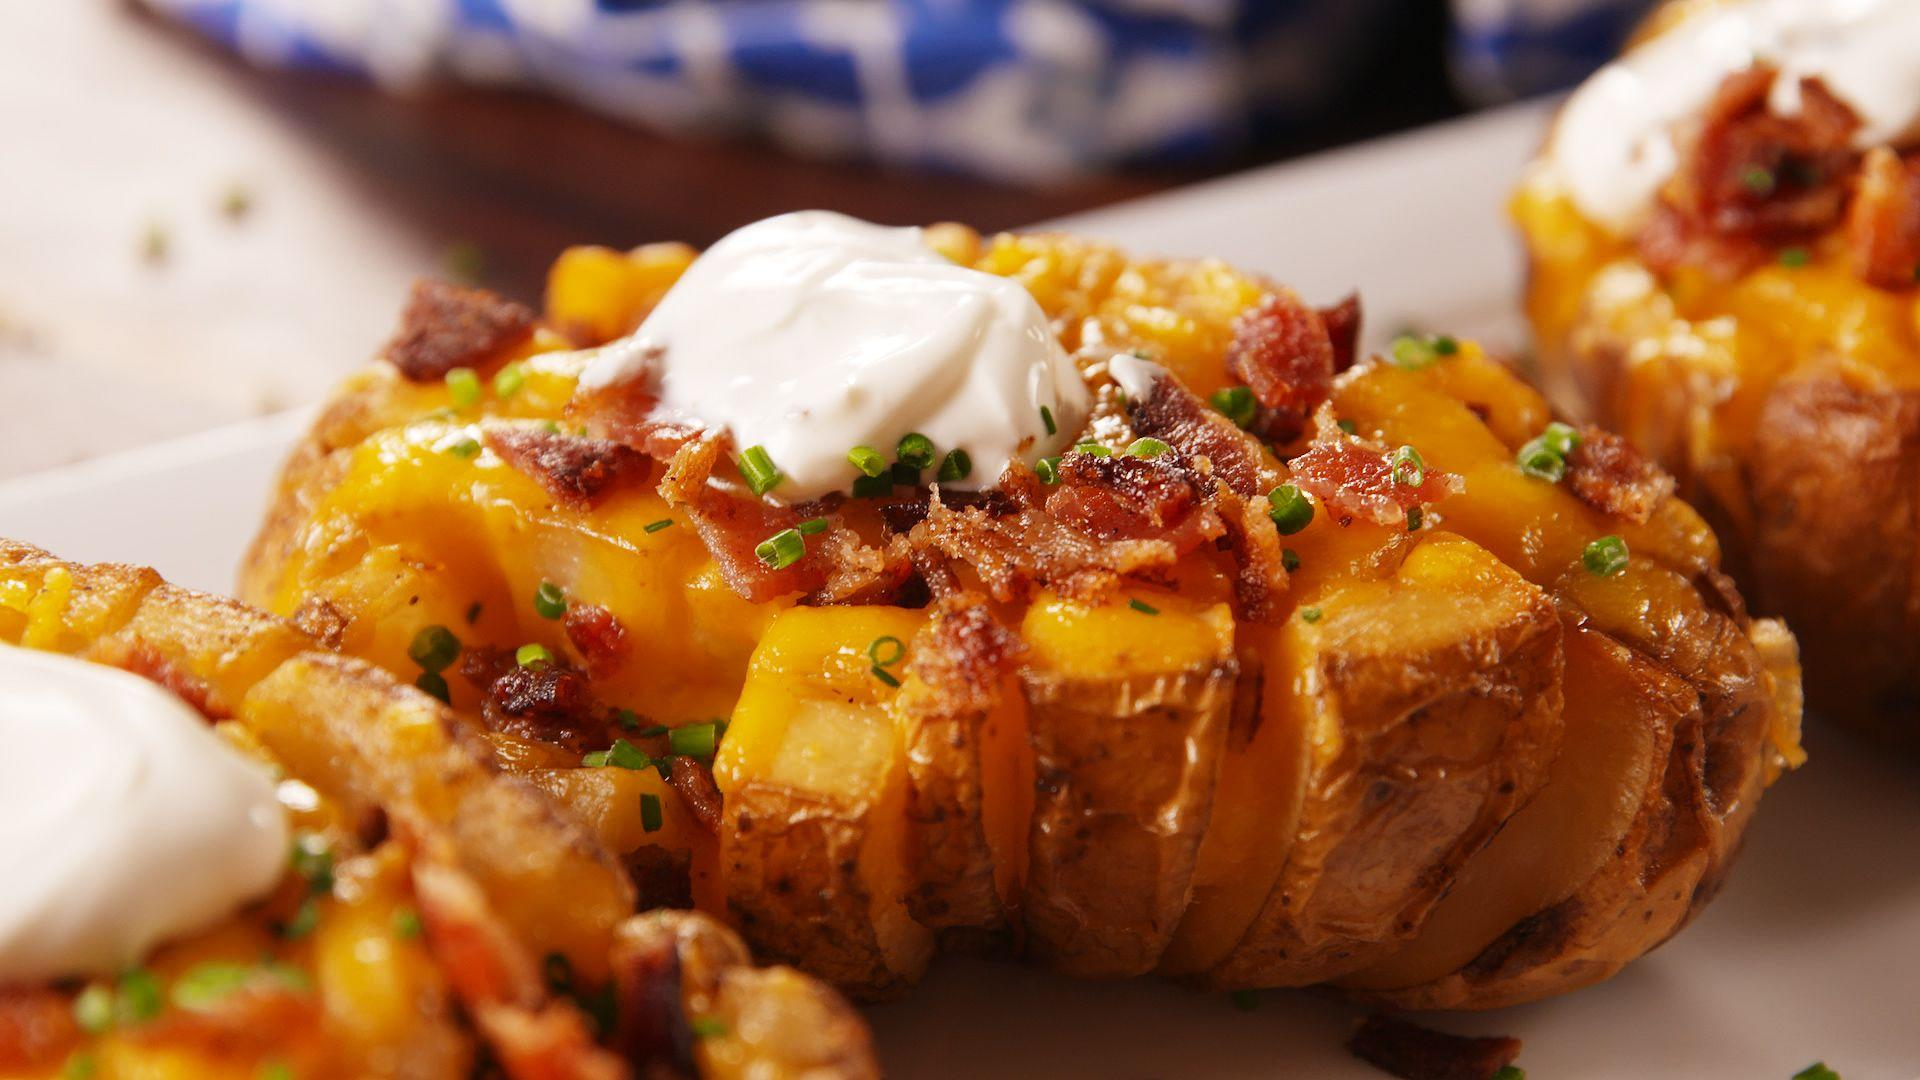 "<p>First thing's first: Here's <a href=""https://www.delish.com/cooking/recipe-ideas/a20533565/how-to-bake-a-potato/"" rel=""nofollow noopener"" target=""_blank"" data-ylk=""slk:the best way to bake a potato"" class=""link rapid-noclick-resp"">the best way to bake a potato</a>. Once you've got that covered, quit <em>only</em> topping them with sour cream and calling it a day. There's a world of options out there, from turning them into a breakfast boat to stuffing them with buffalo chicken. Plus, try our <span>amazing twice baked potatoes</span> and <span>genius baked potato toppings</span>!</p>"